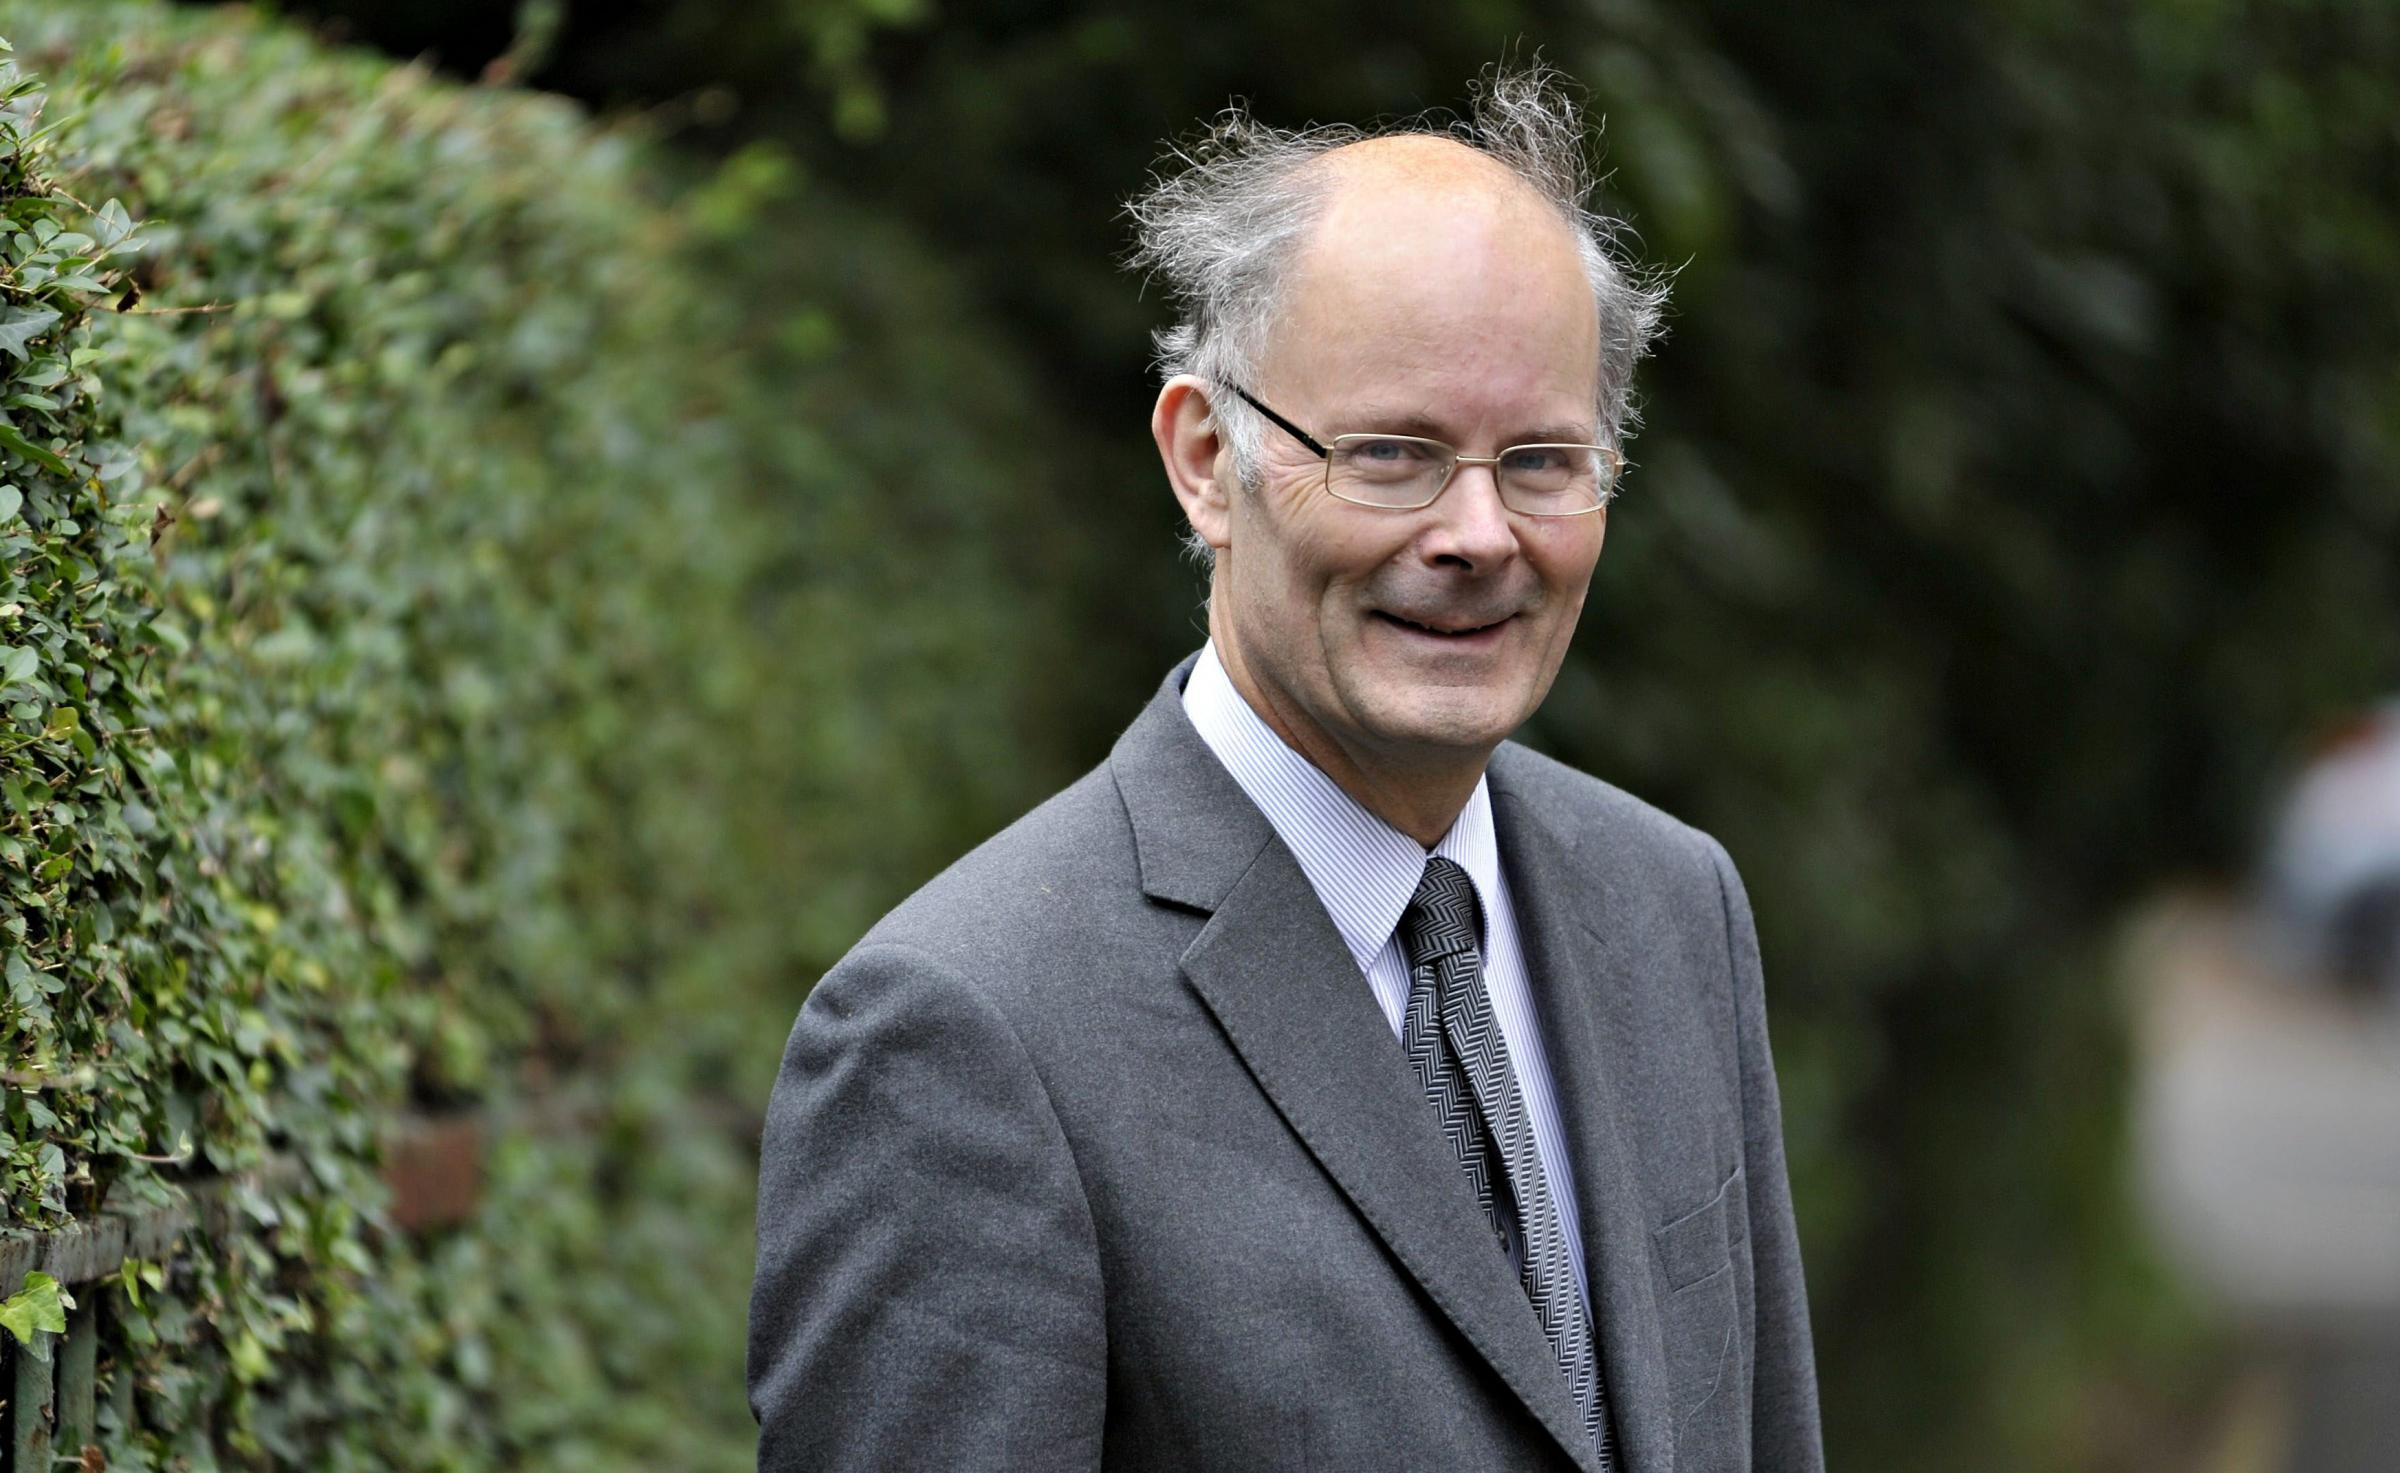 Report author and senior research fellow at NatCen Sir John Curtice